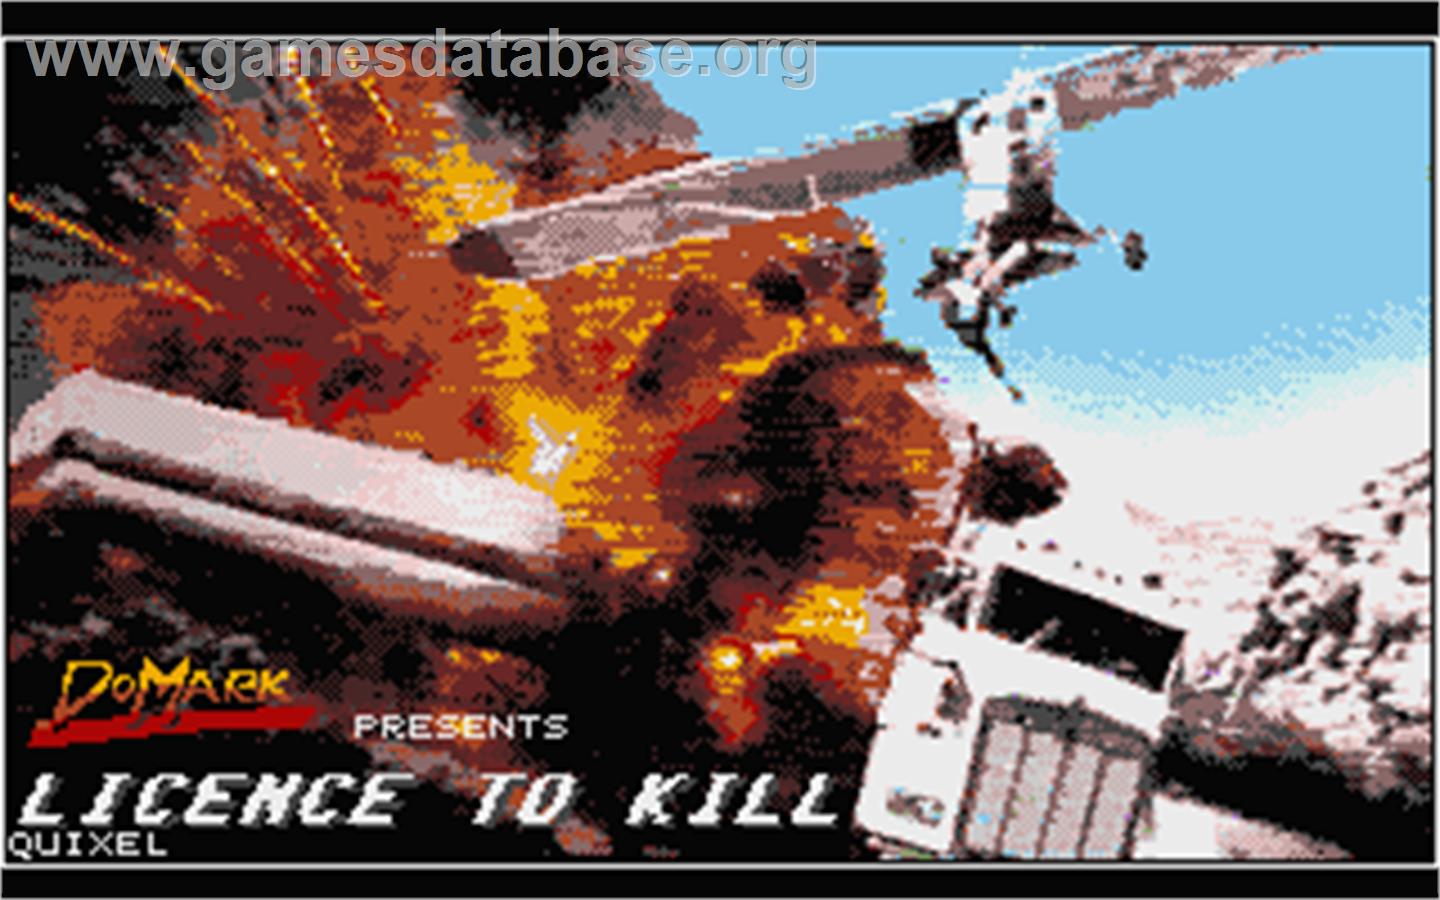 007: Licence to Kill - Atari ST - Artwork - Title Screen